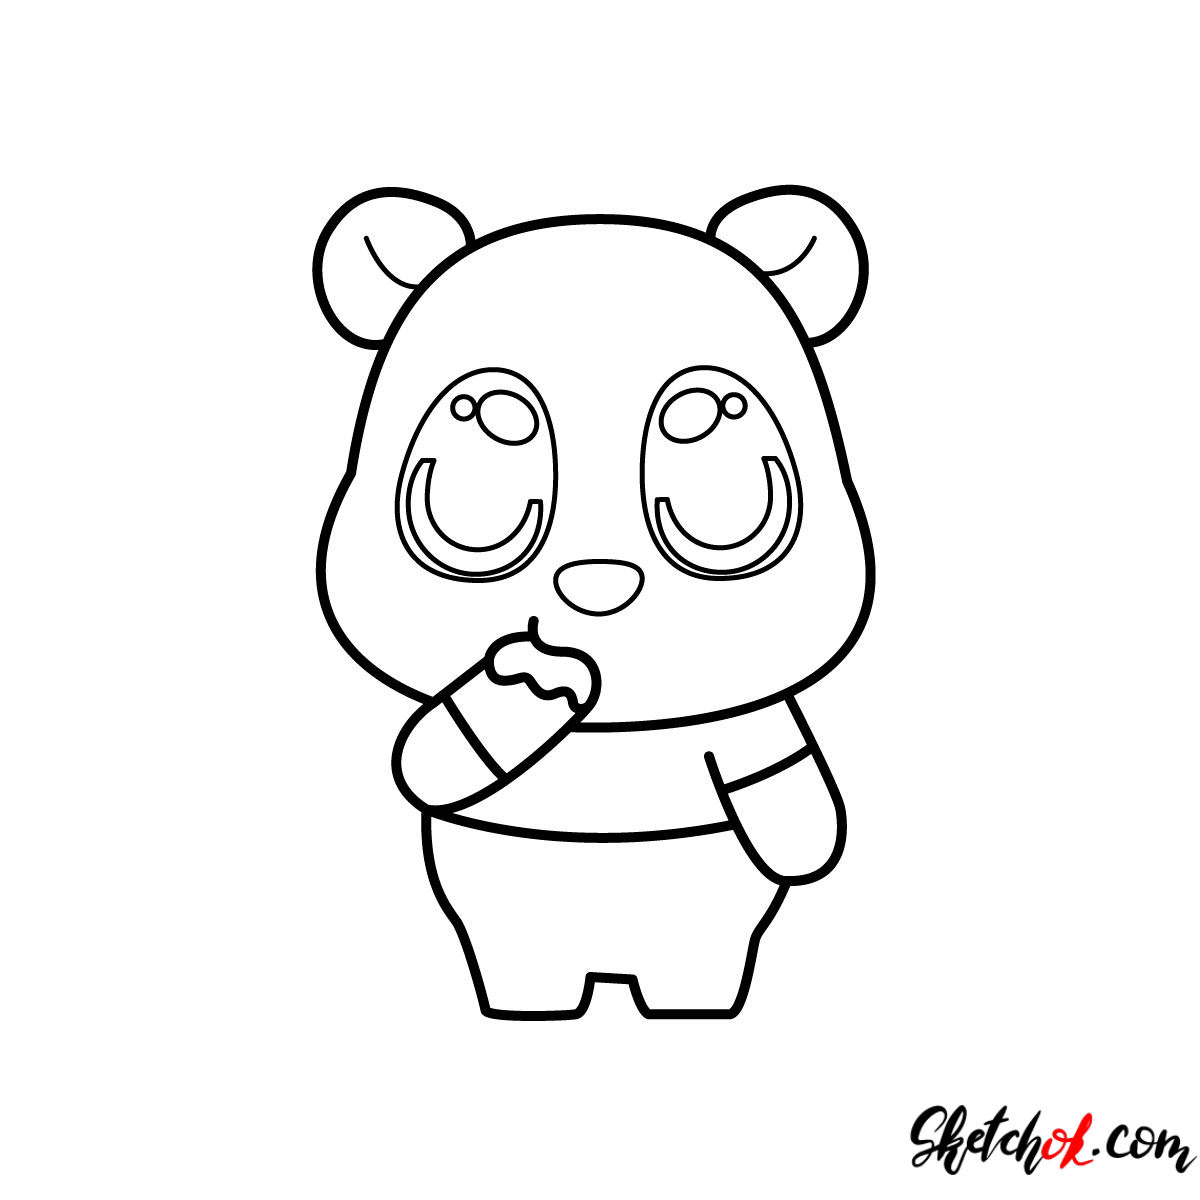 how to draw pooh bear awesome how to draw pooh bear face hd wallpaper pooh how draw to bear